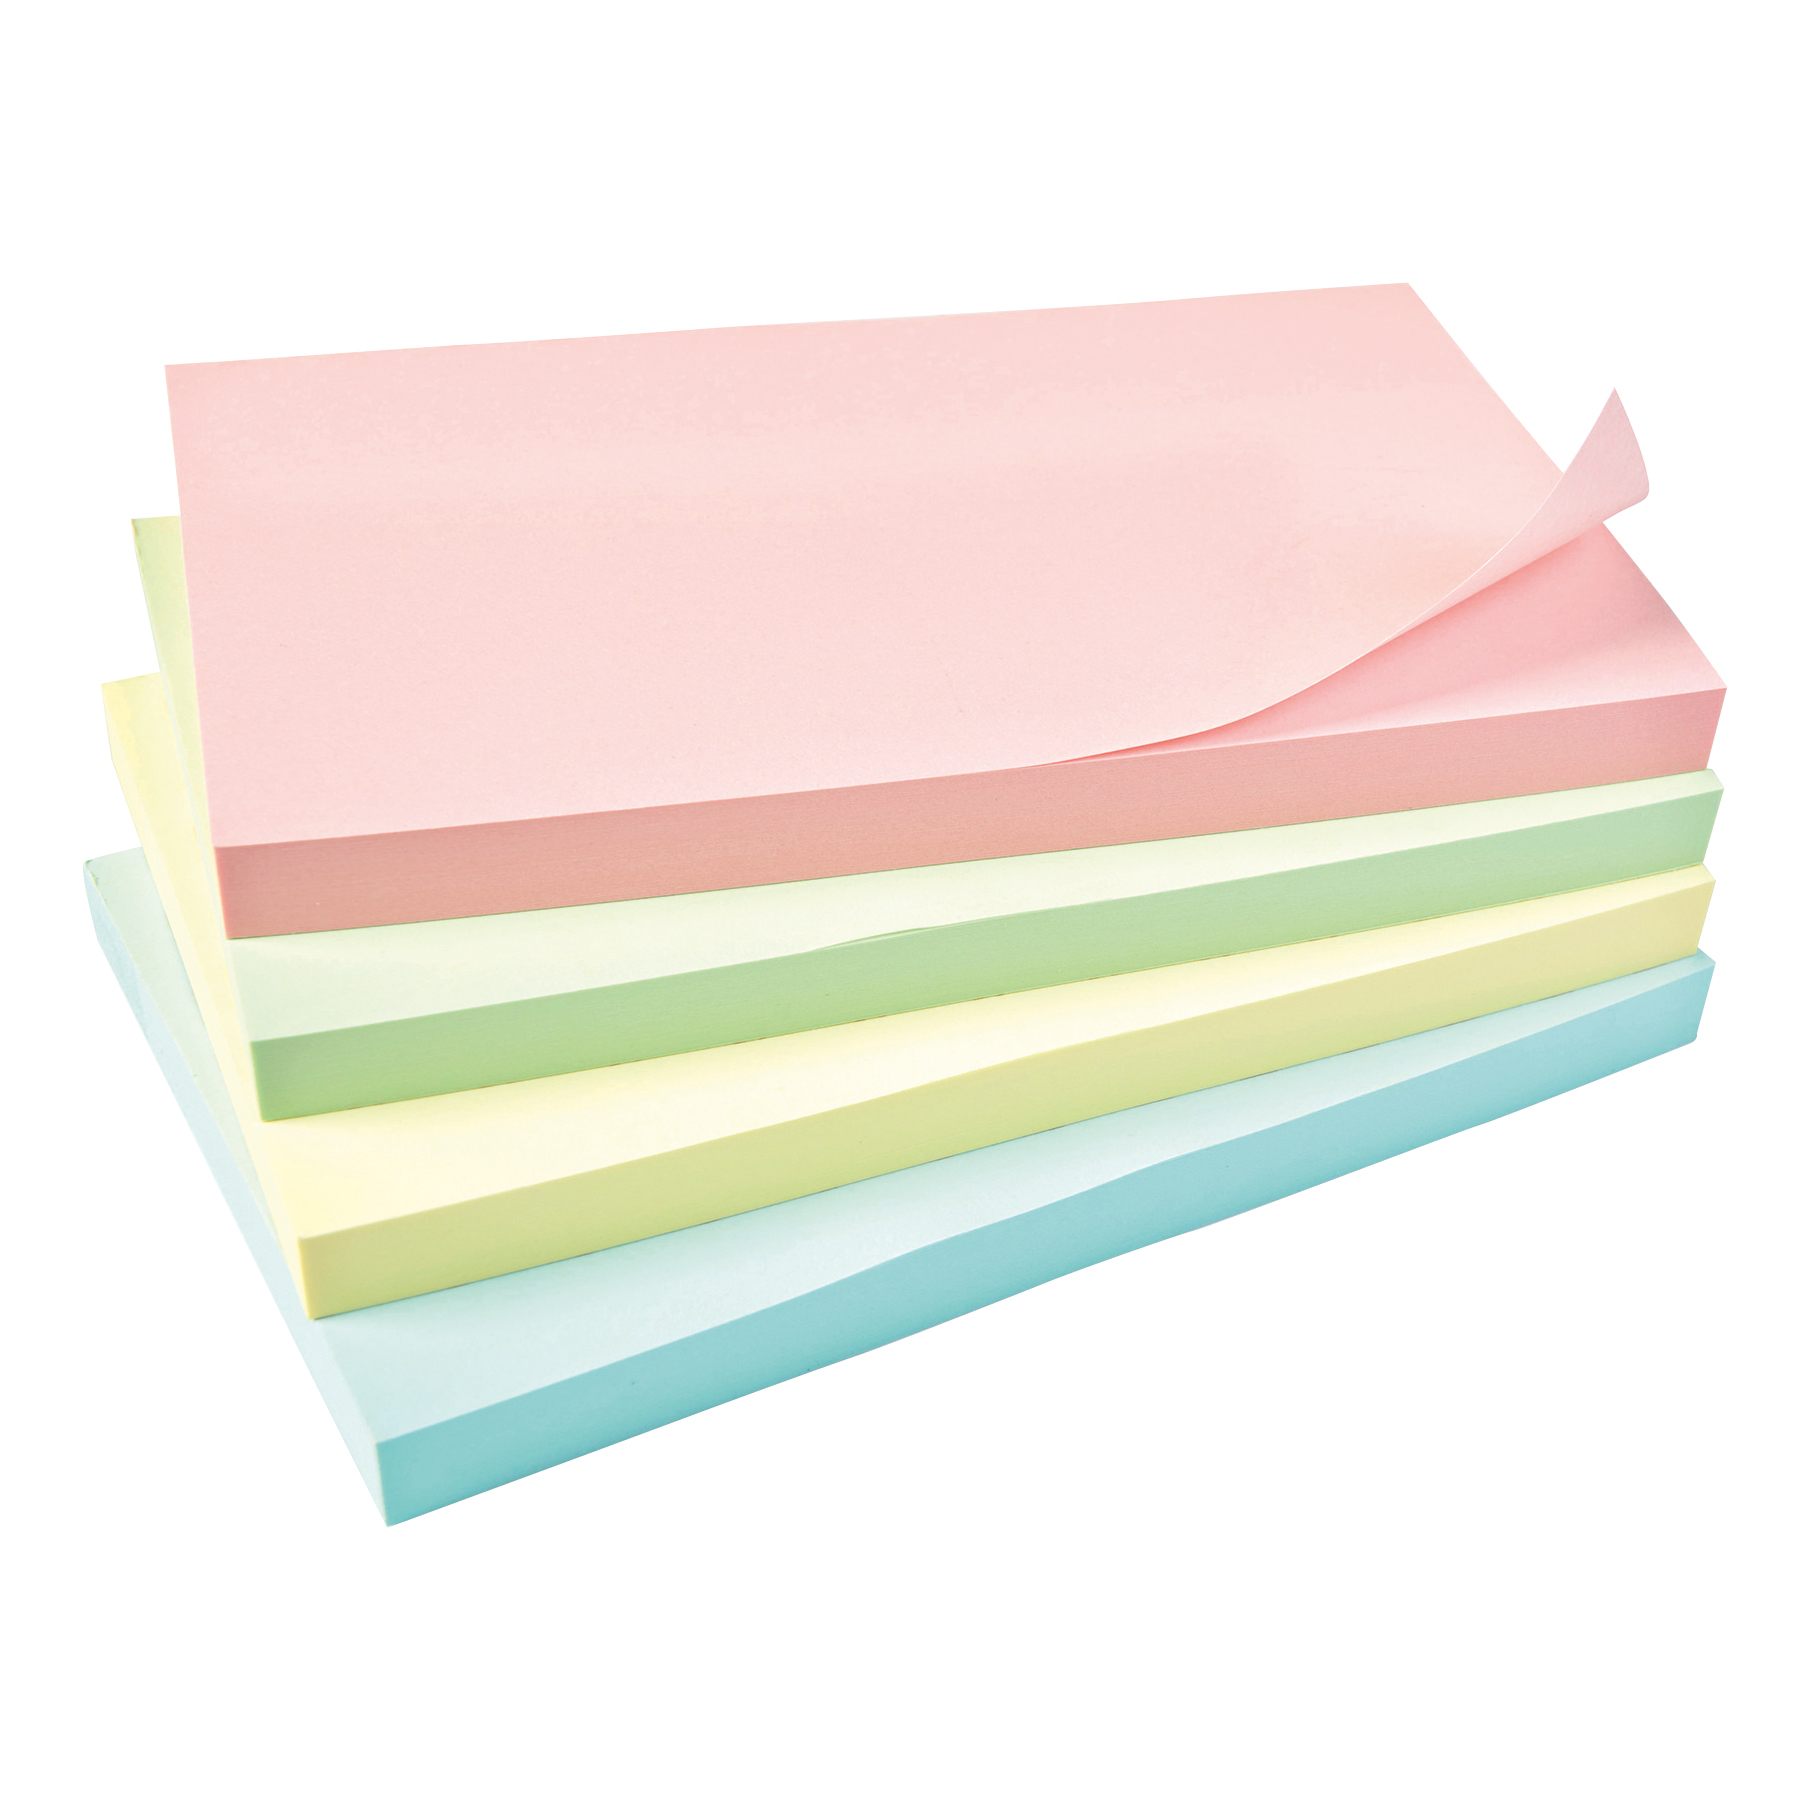 5 Star Office Re-Move Notes Repositionable Pastel Pad of 100 Sheets 76x127mm Assorted [Pack 12]